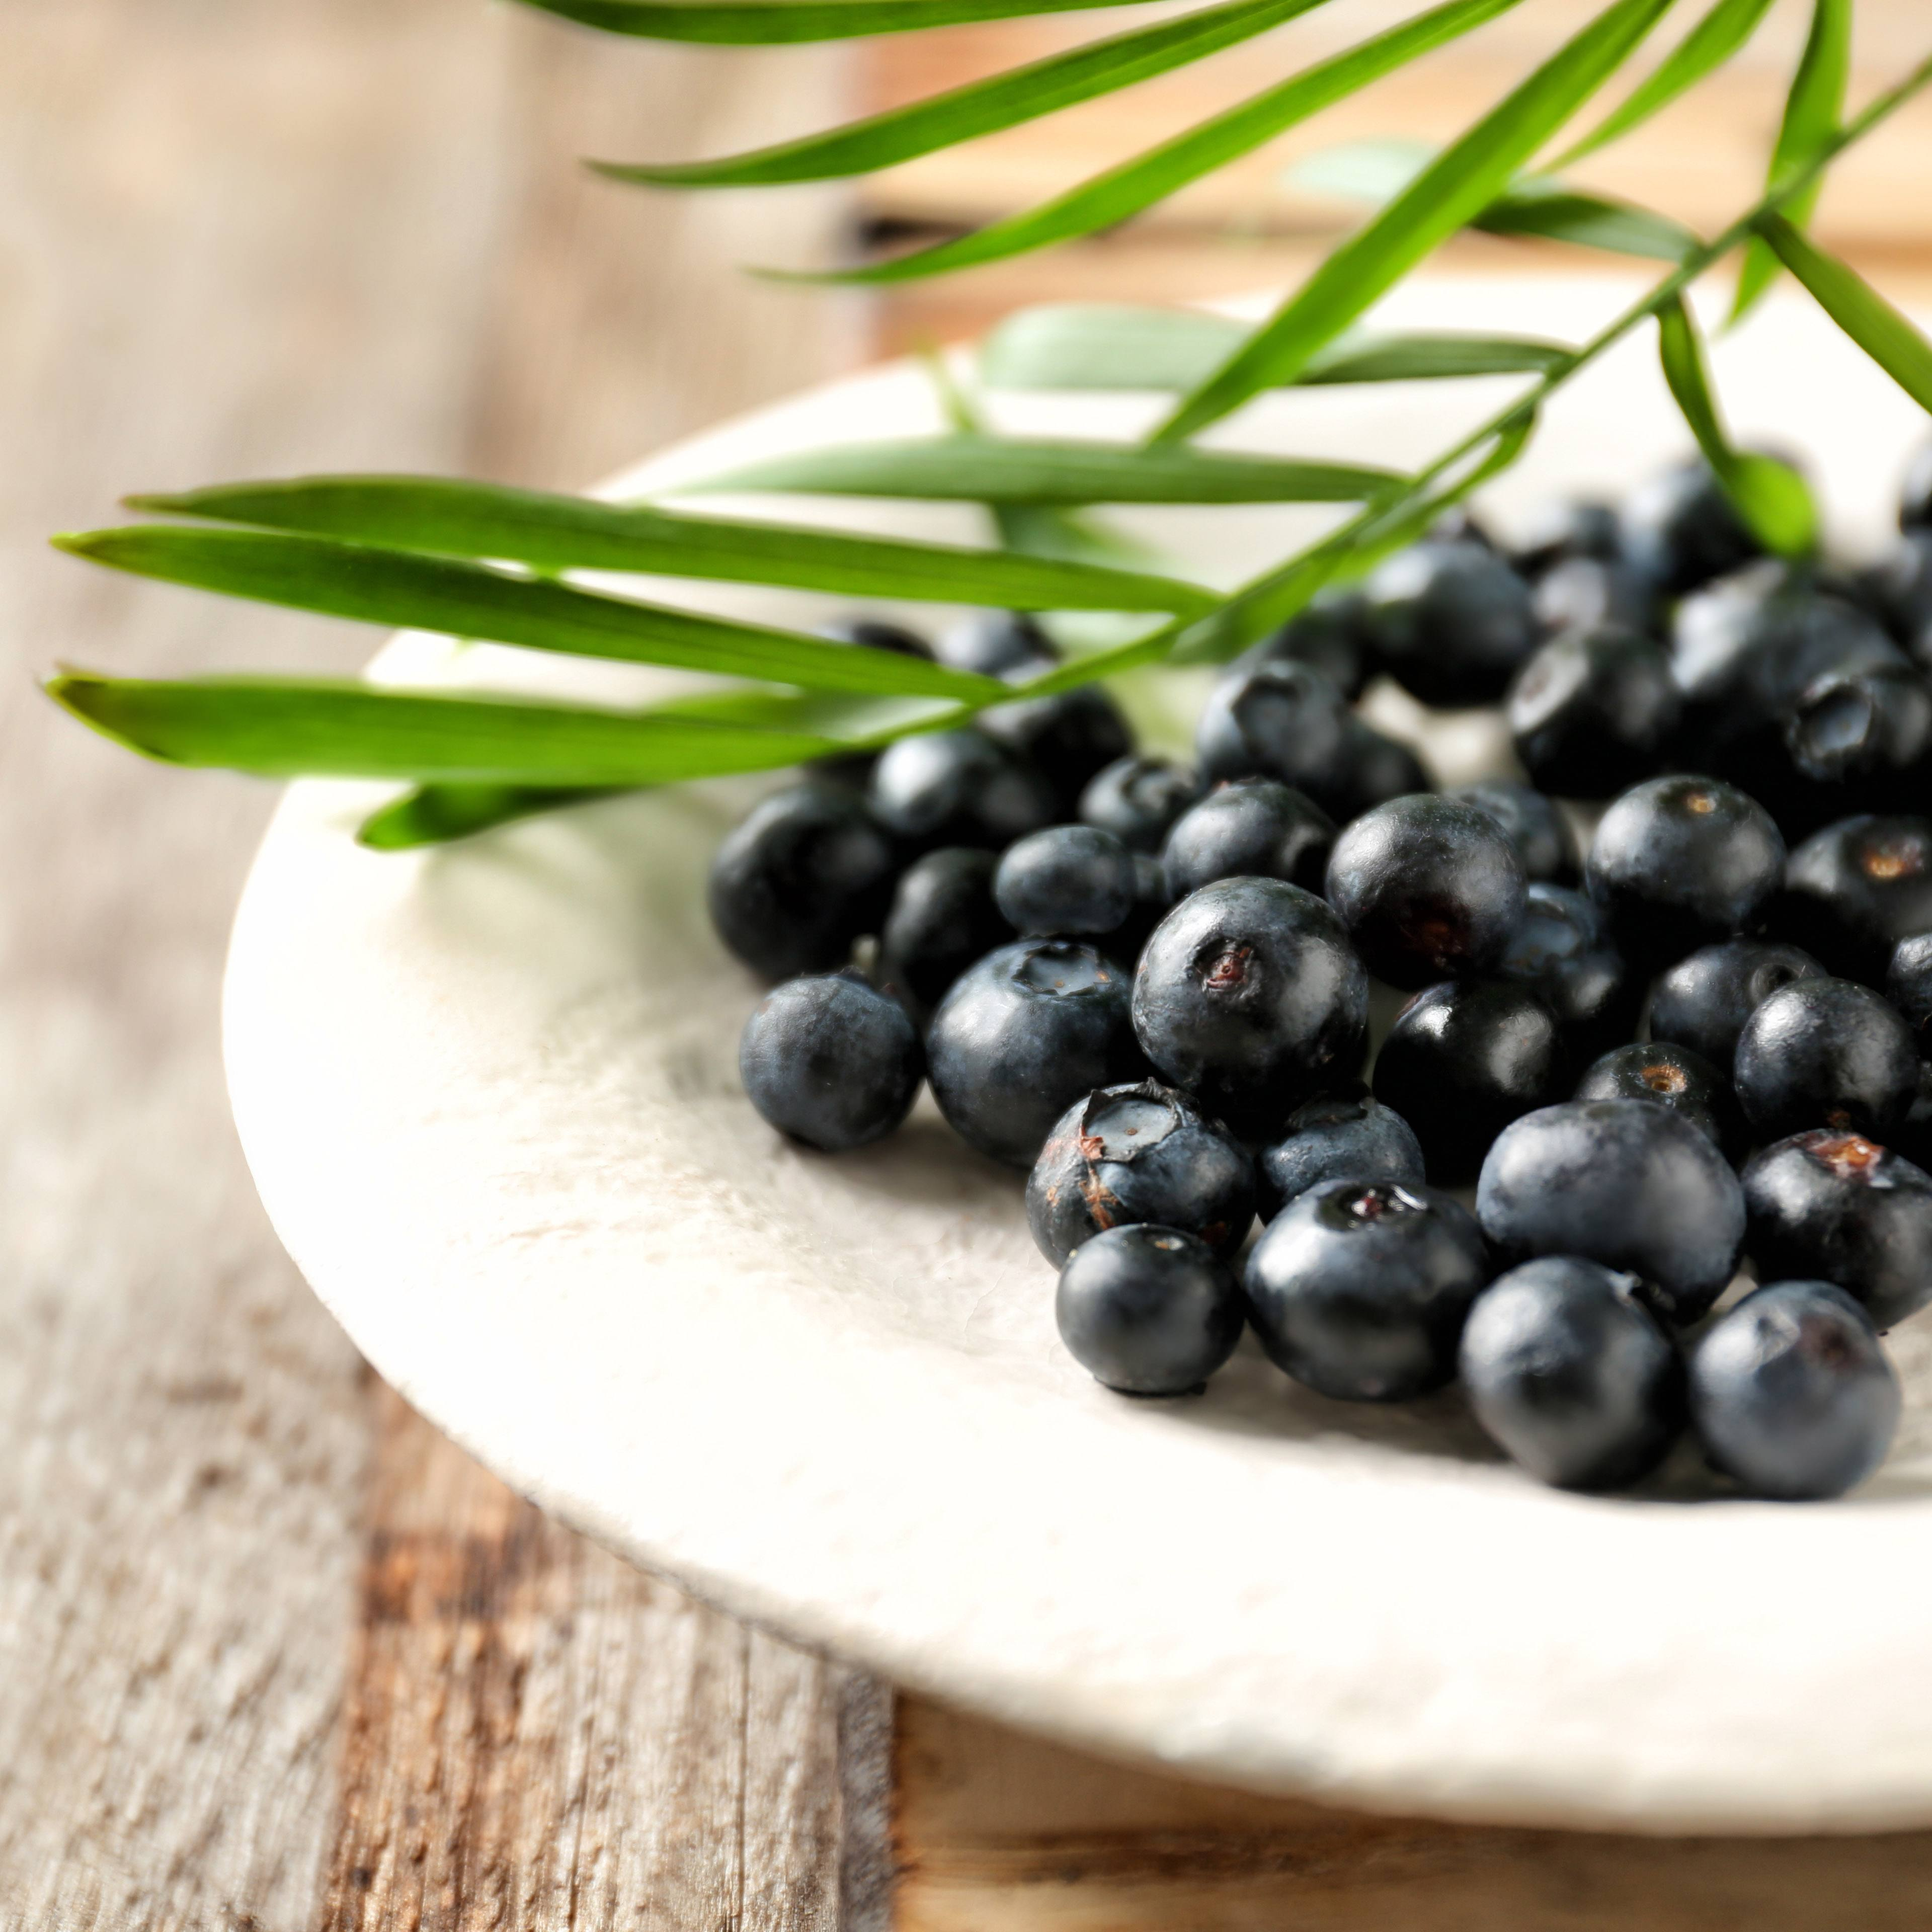 a plate of fresh acai berries on a rough wooden table